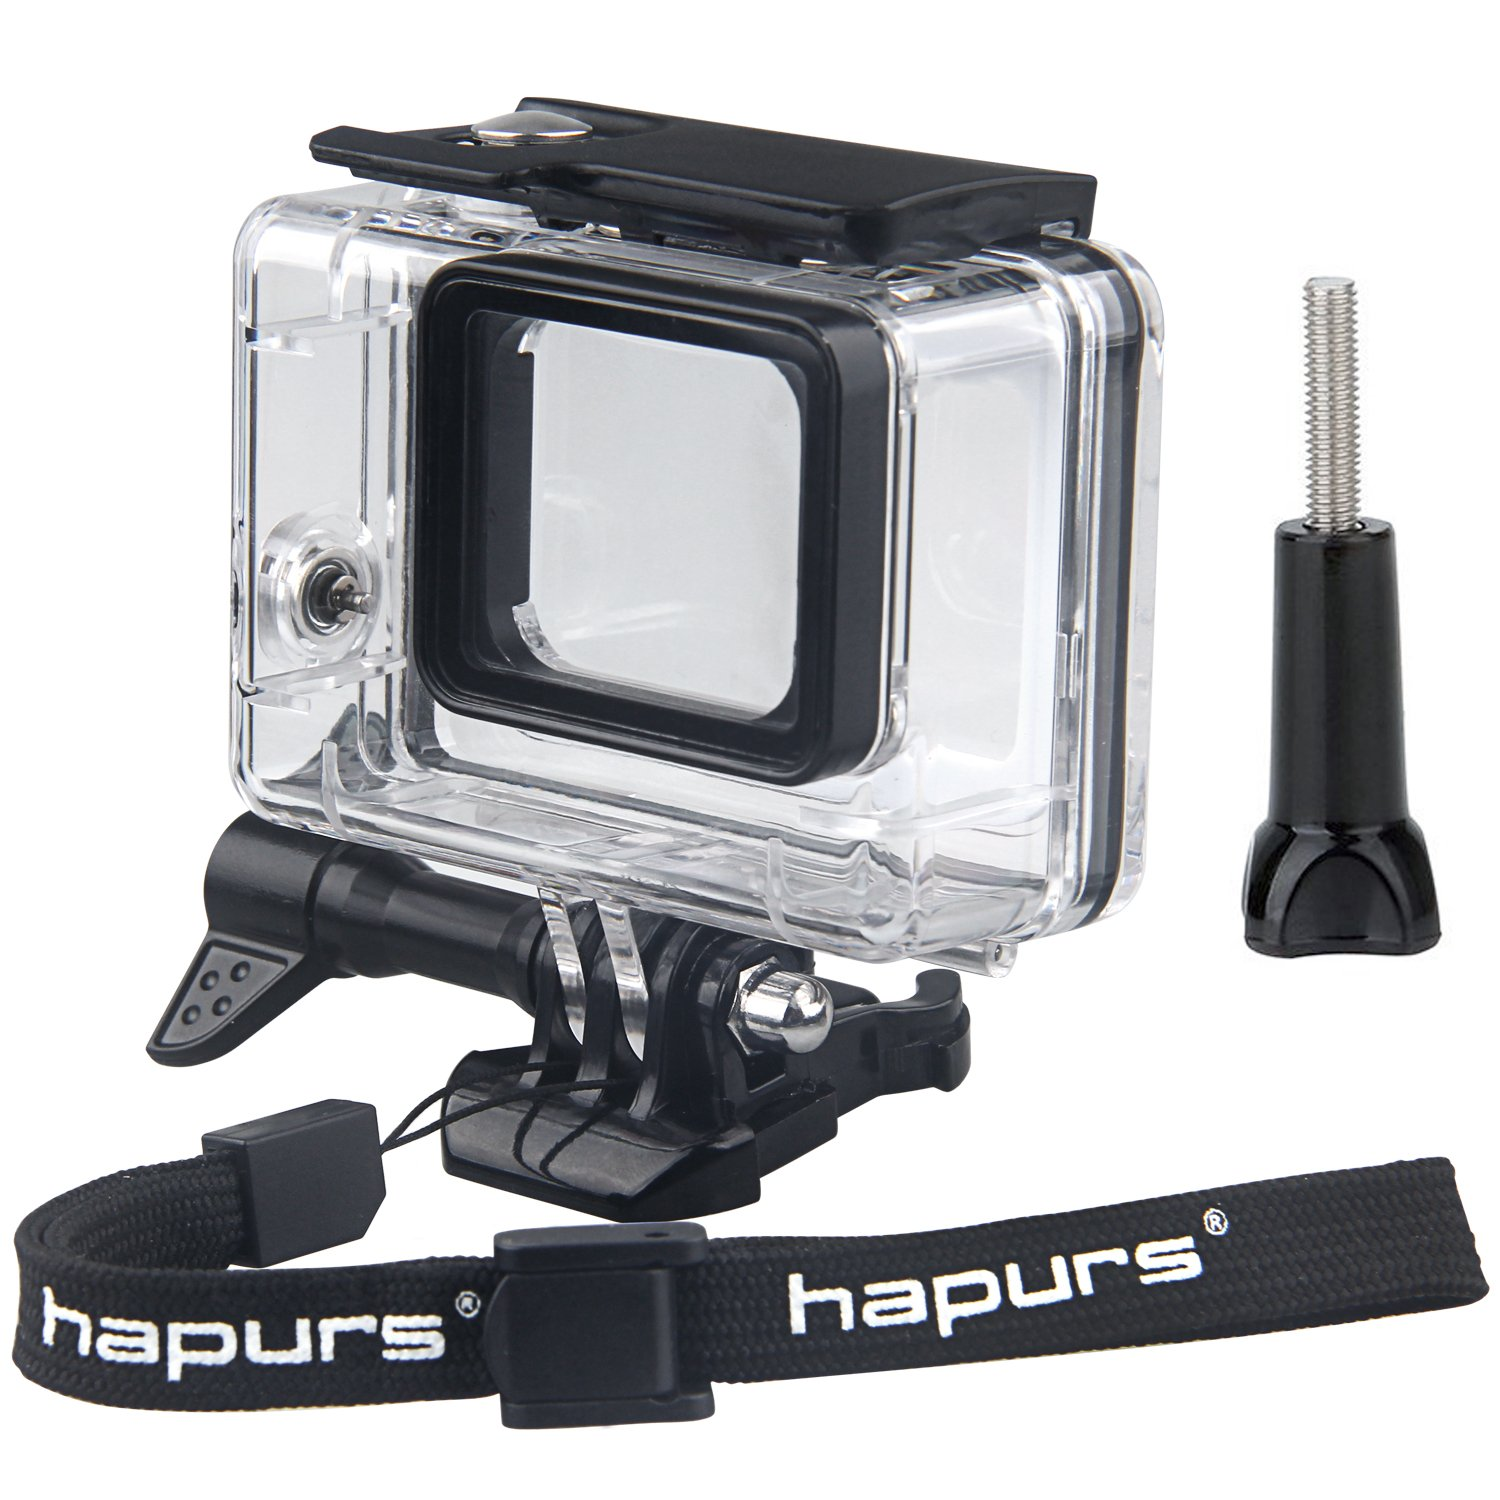 Hapurs Diving Waterproof Housing Protective Case Cover Accessories For GoPro Hero 6 Black New GoPro HERO Sport Cameras Only